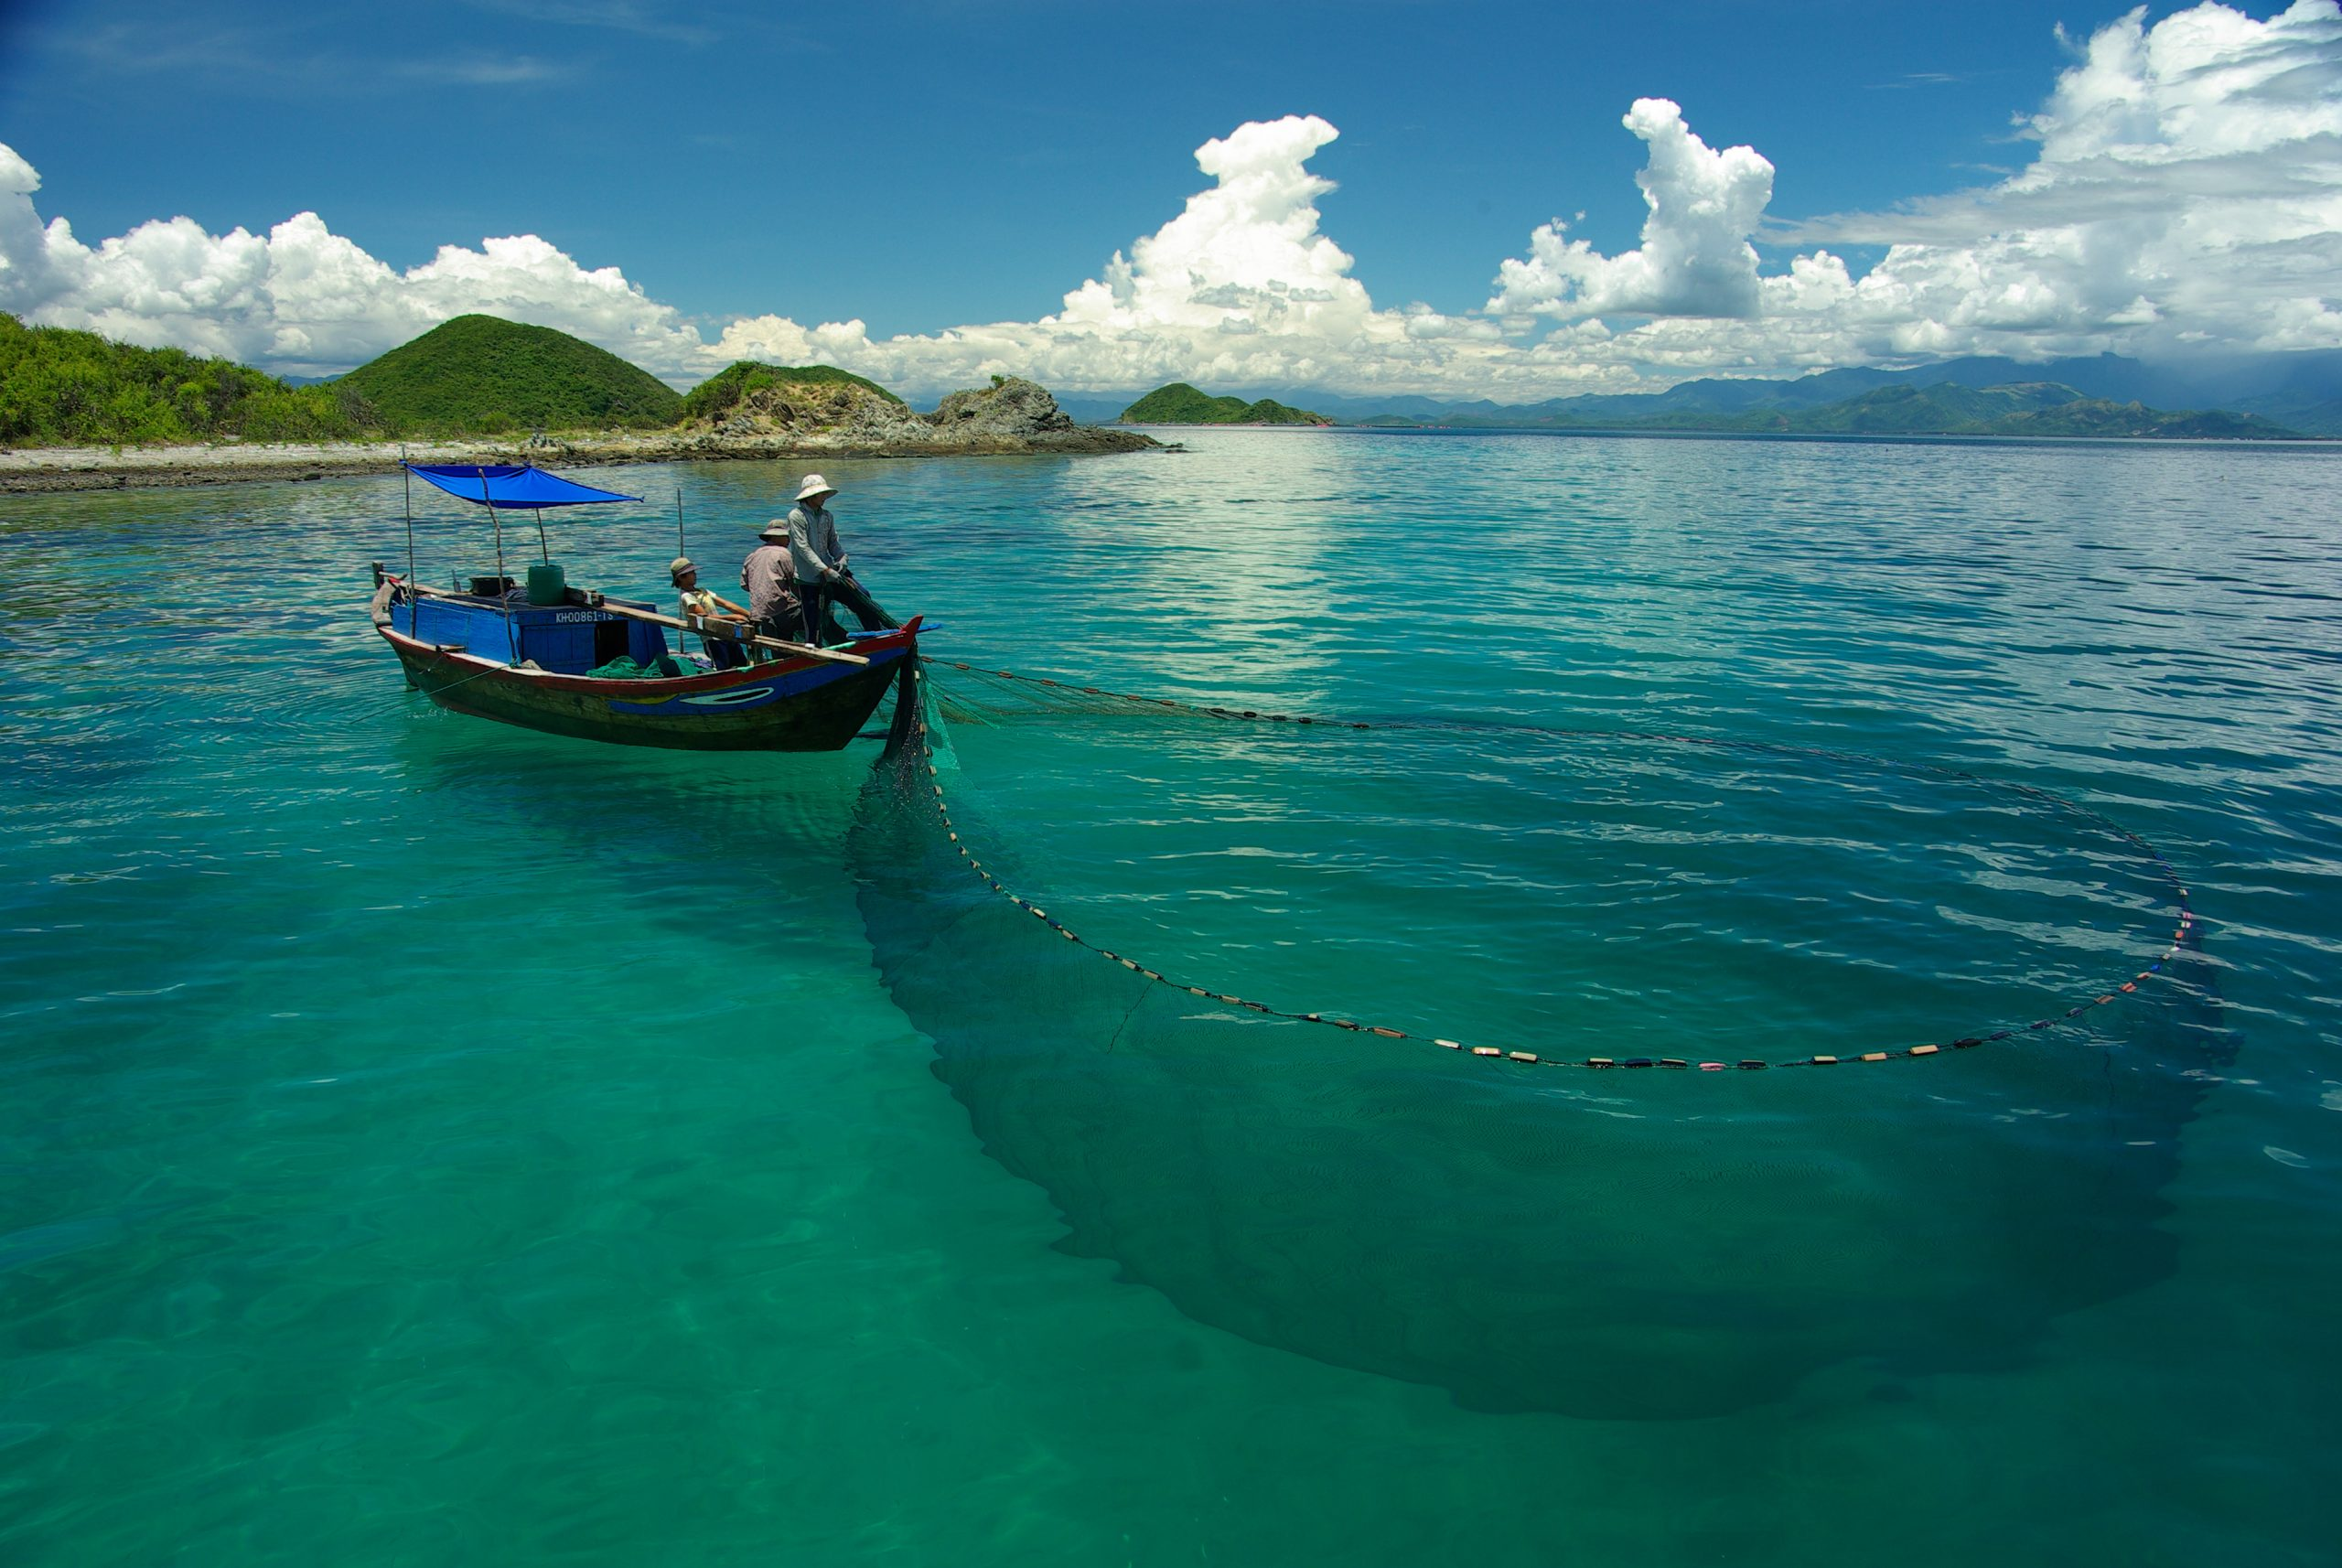 A small fishing boat and fishermen fish using a net.